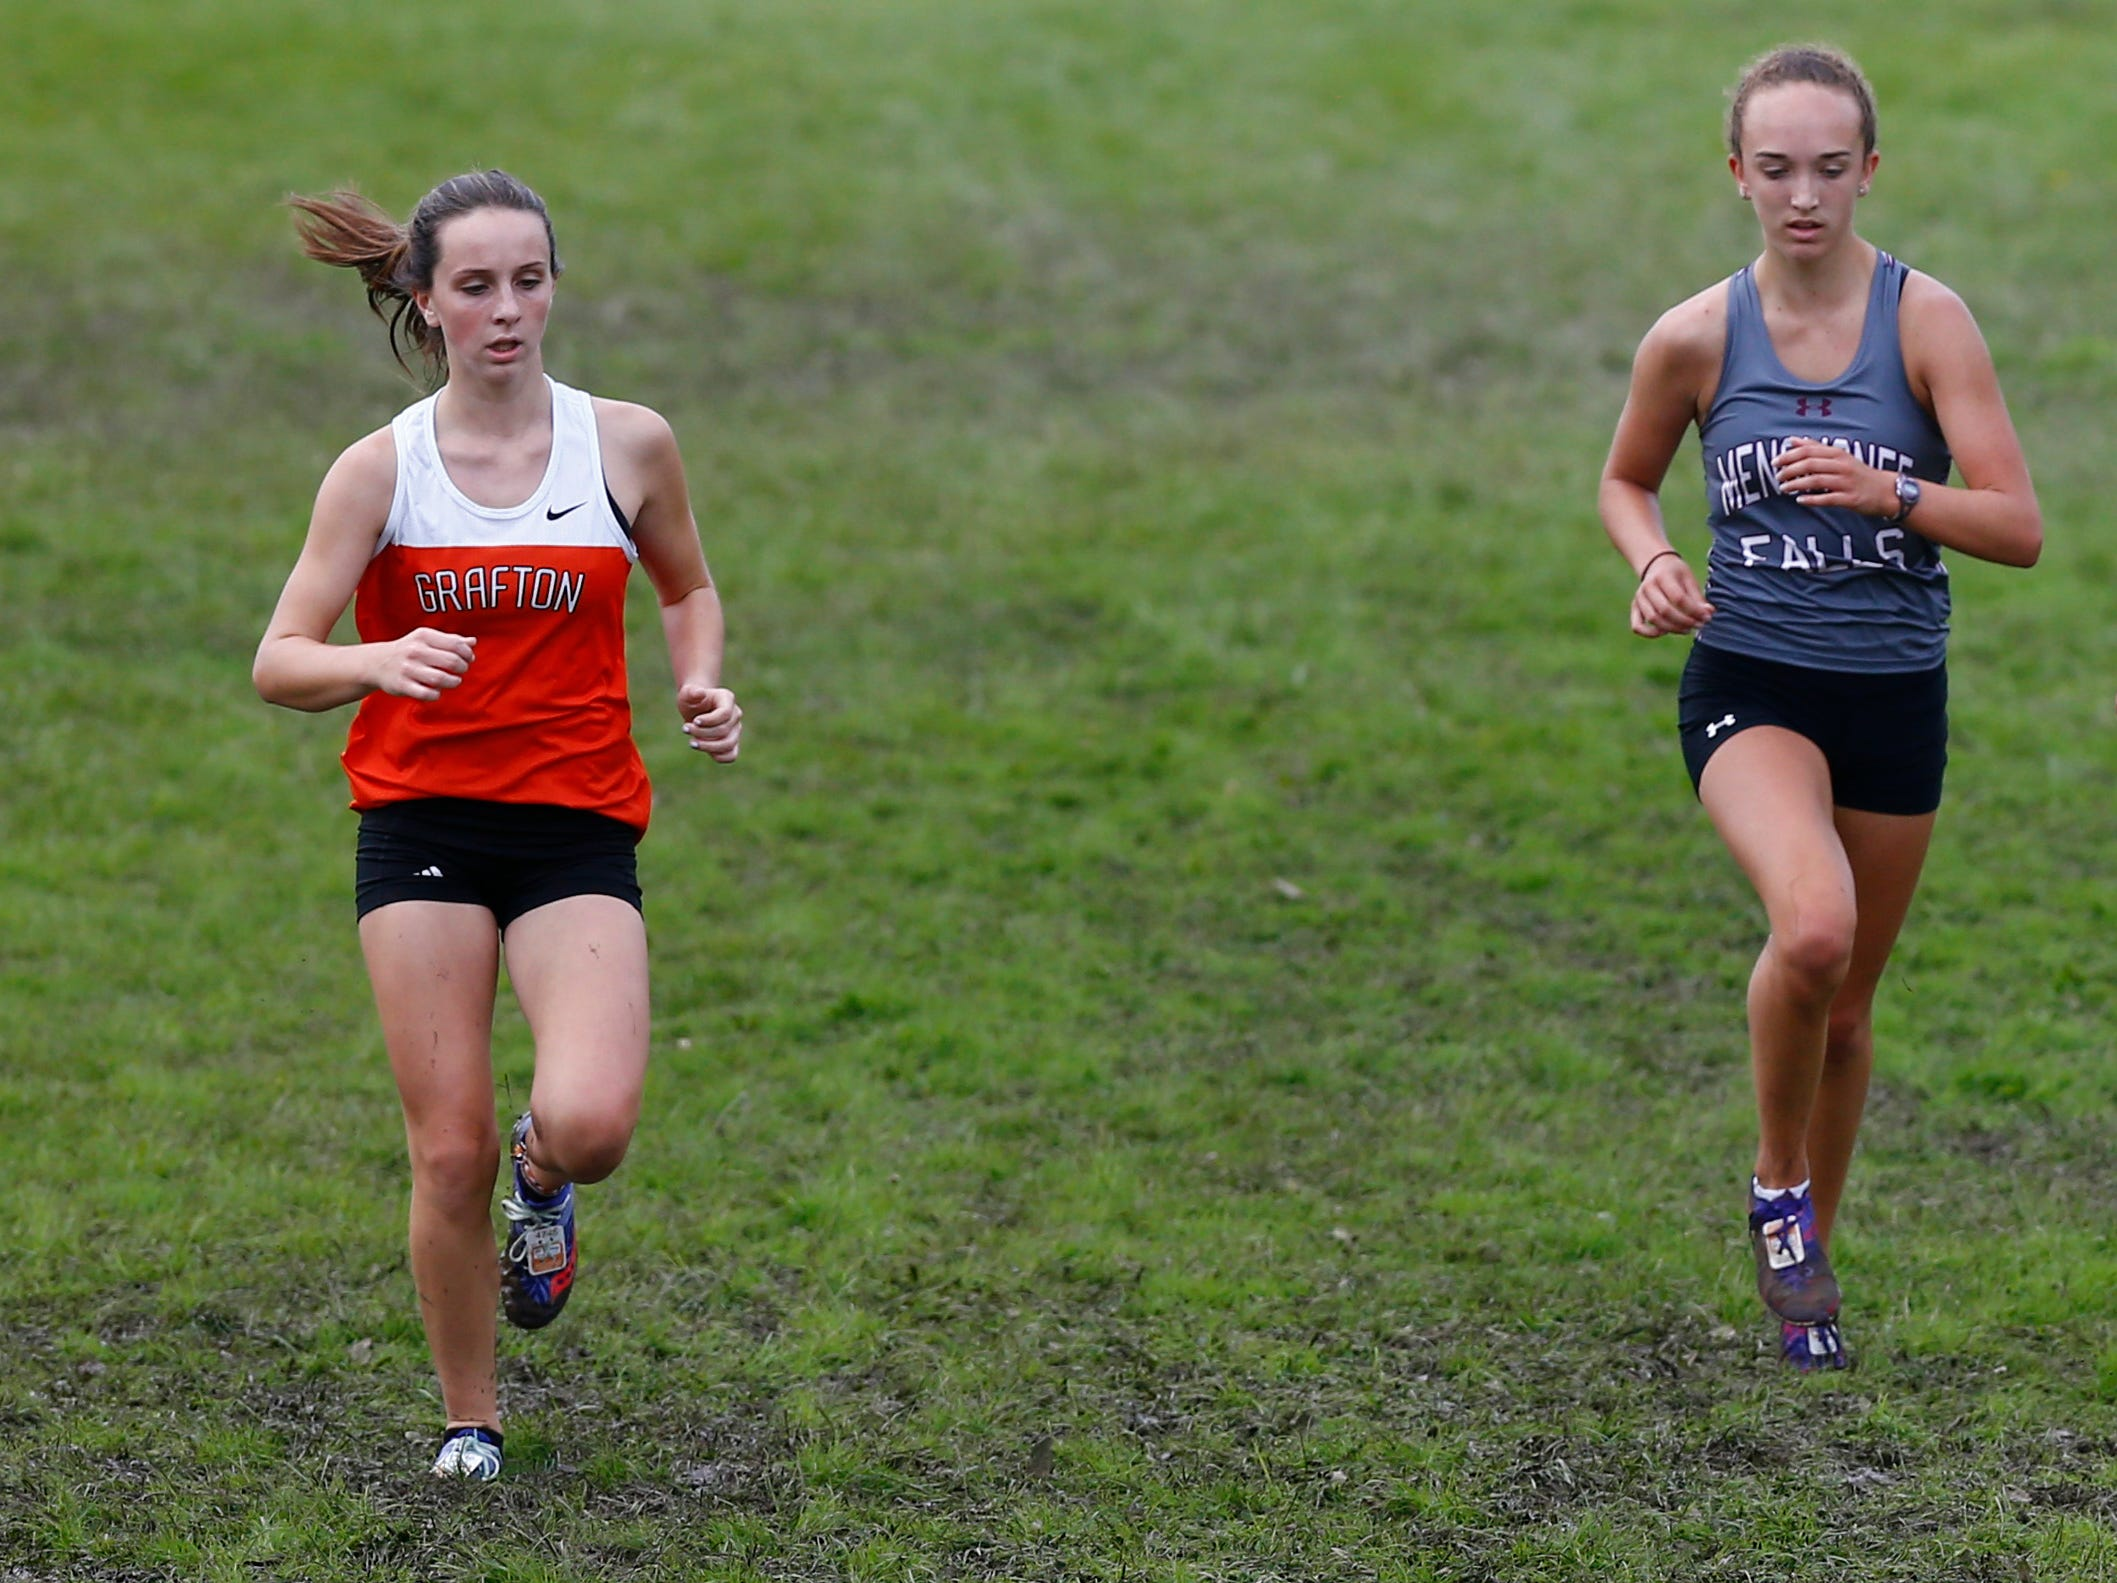 Grafton's Julia Wille (left) and Menomonee Falls' Olivia Robinson head into the final stretch of the Menomonee Falls Matt Hadler Cross Country Invitational at Rotary Park. Wille finished 24th. Robinson was 21st of 76 runners on Sept. 8.